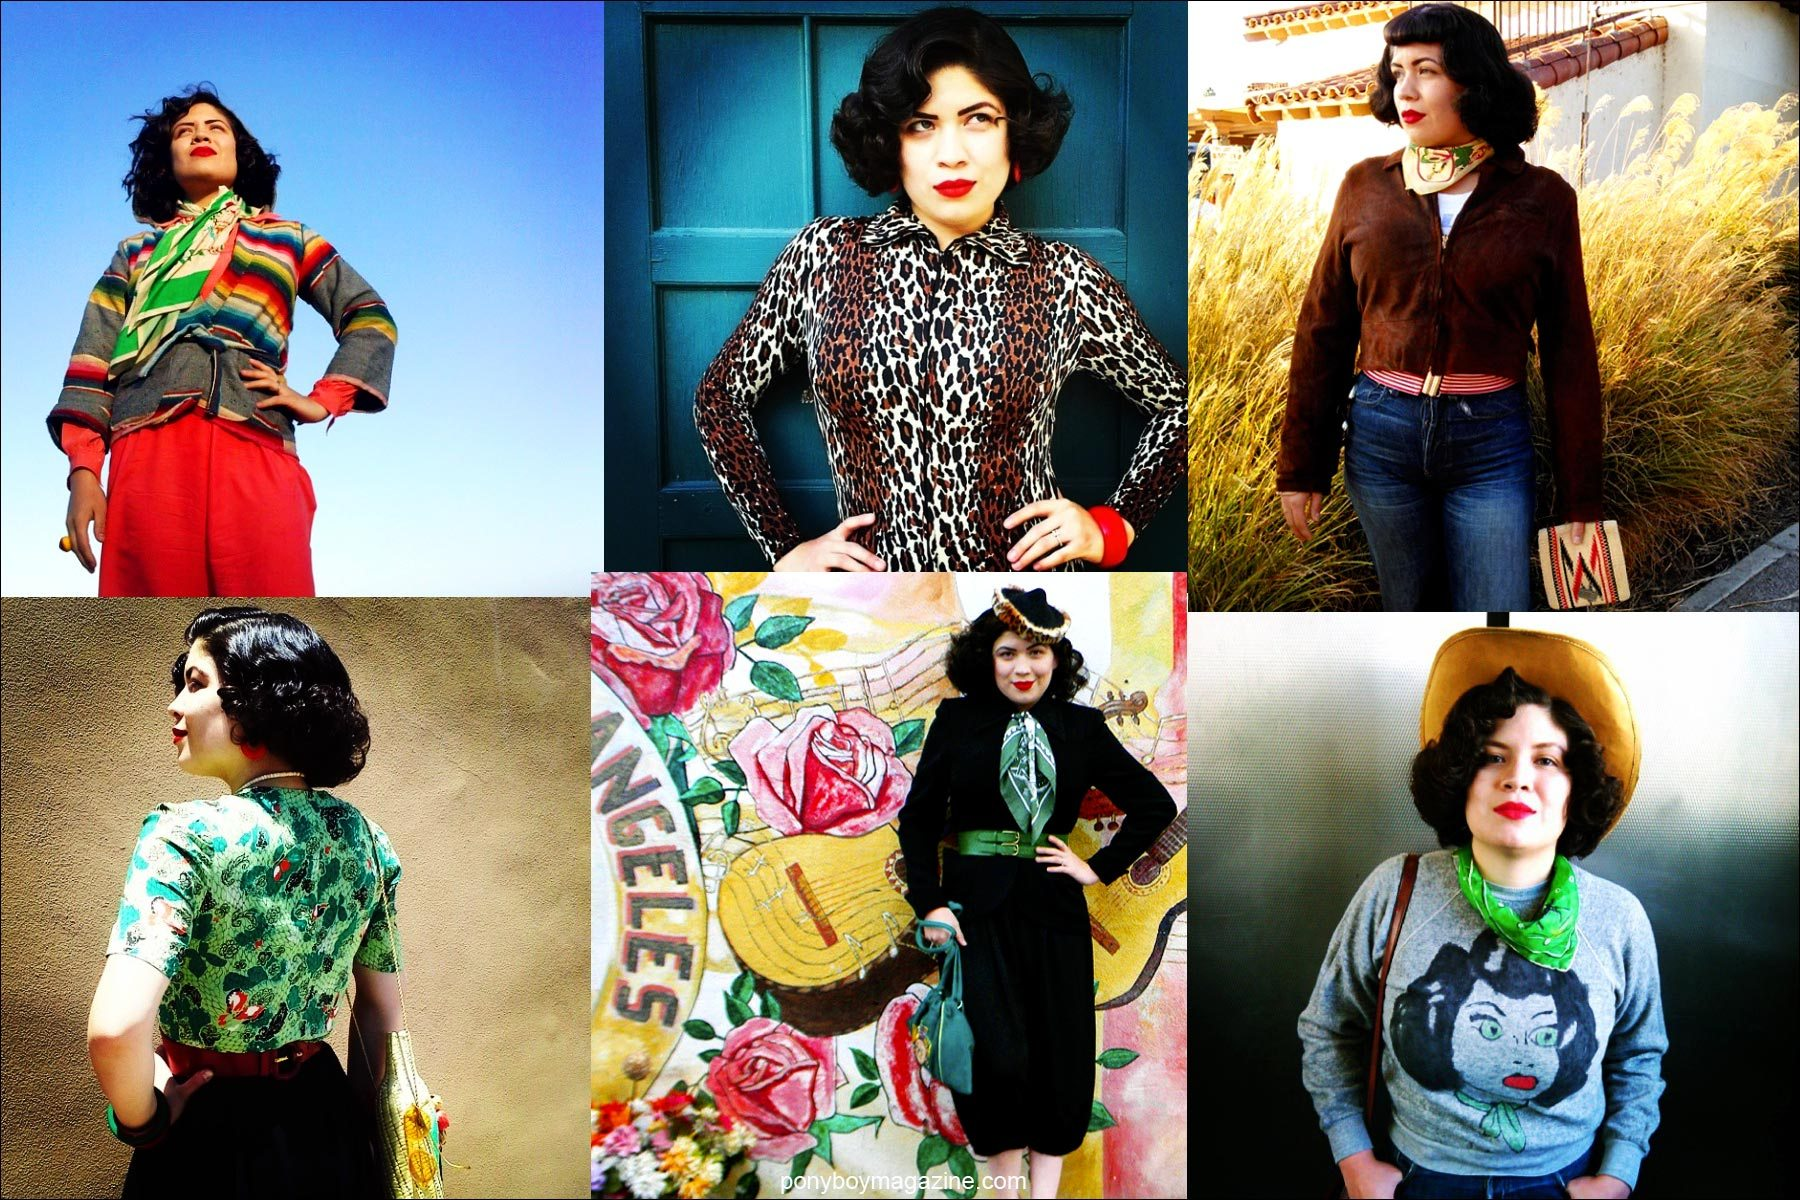 Women's vintage looks photographed on Crystal Landeros from Santa Muerte Trading Co. Ponyboy magazine NYC.